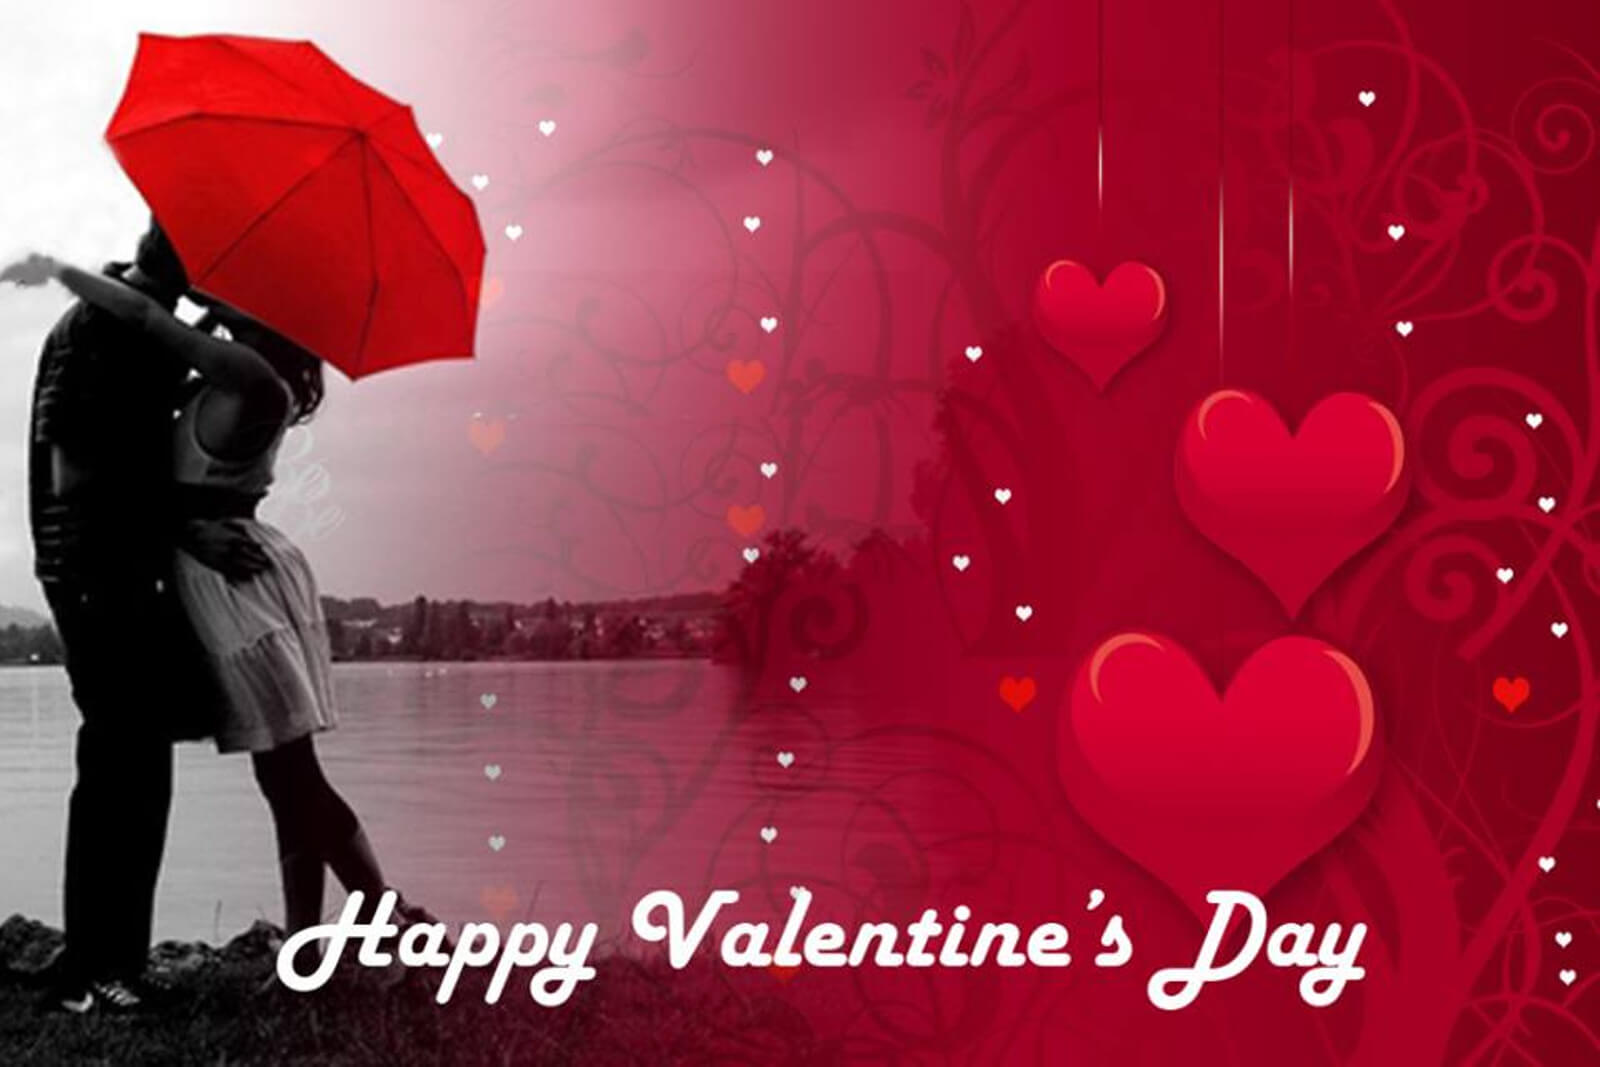 happy valentines day couple kiss love photo picture image hd wallpaper